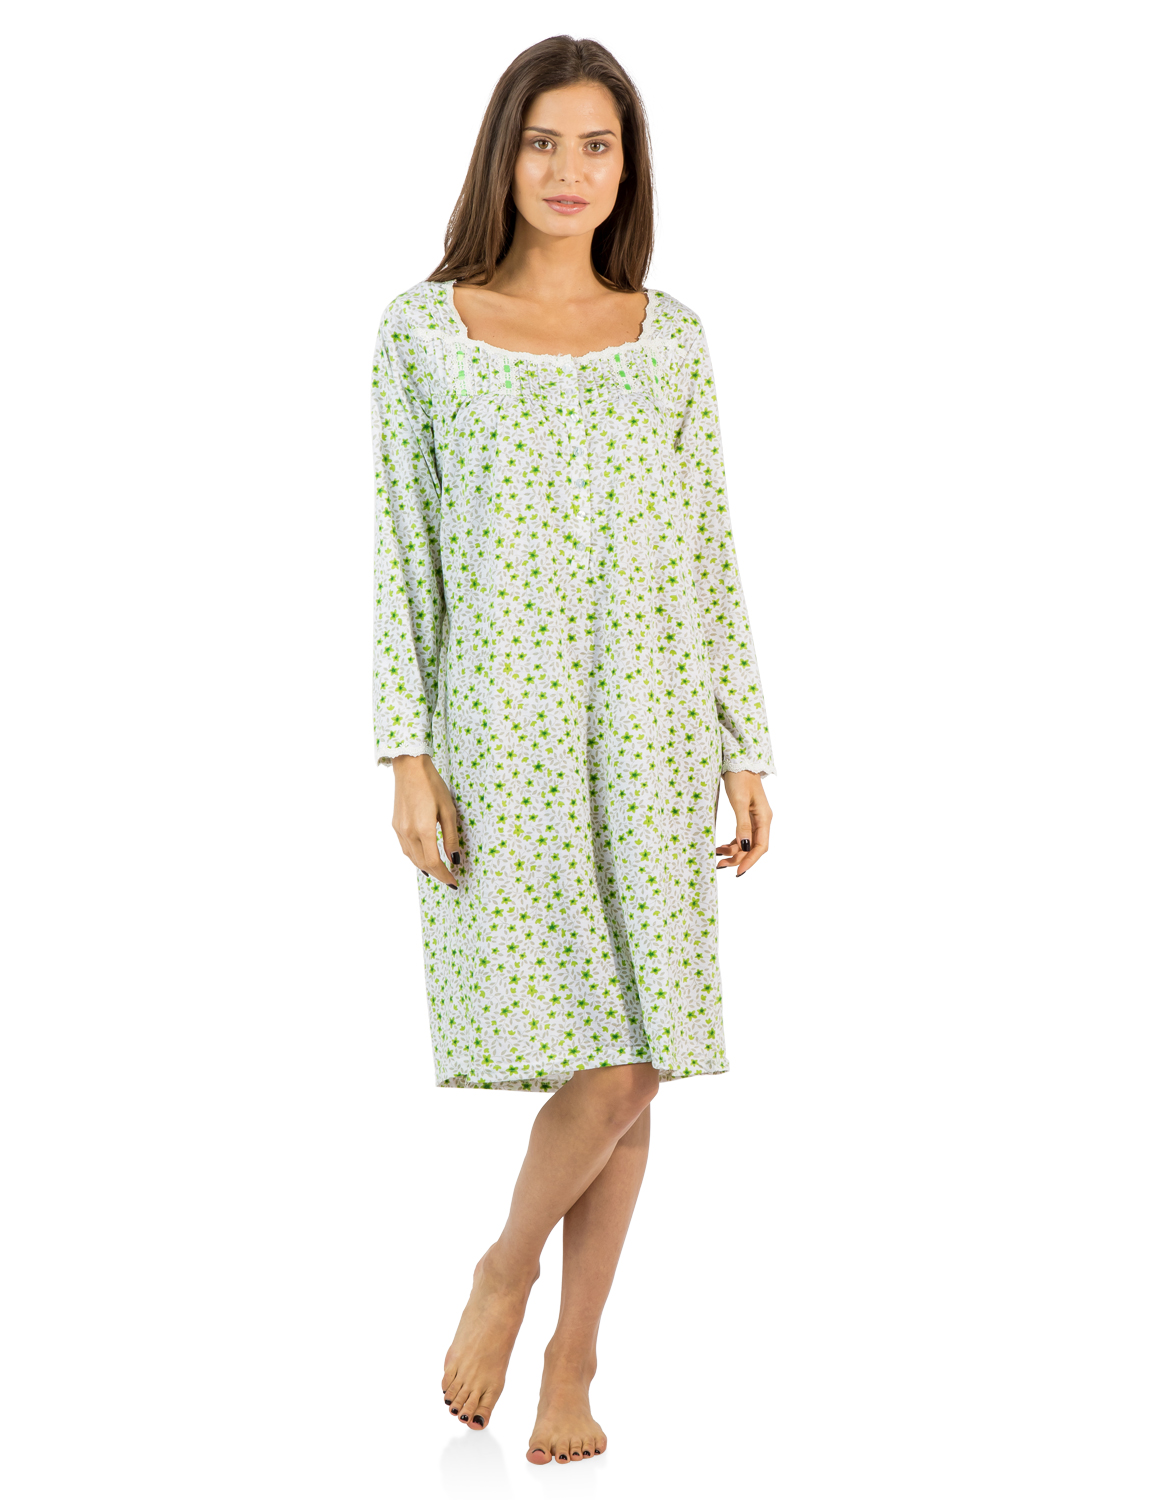 Beverly Rock Womens Cotton Blend Floral Print Short Sleeve Knit Nightgown